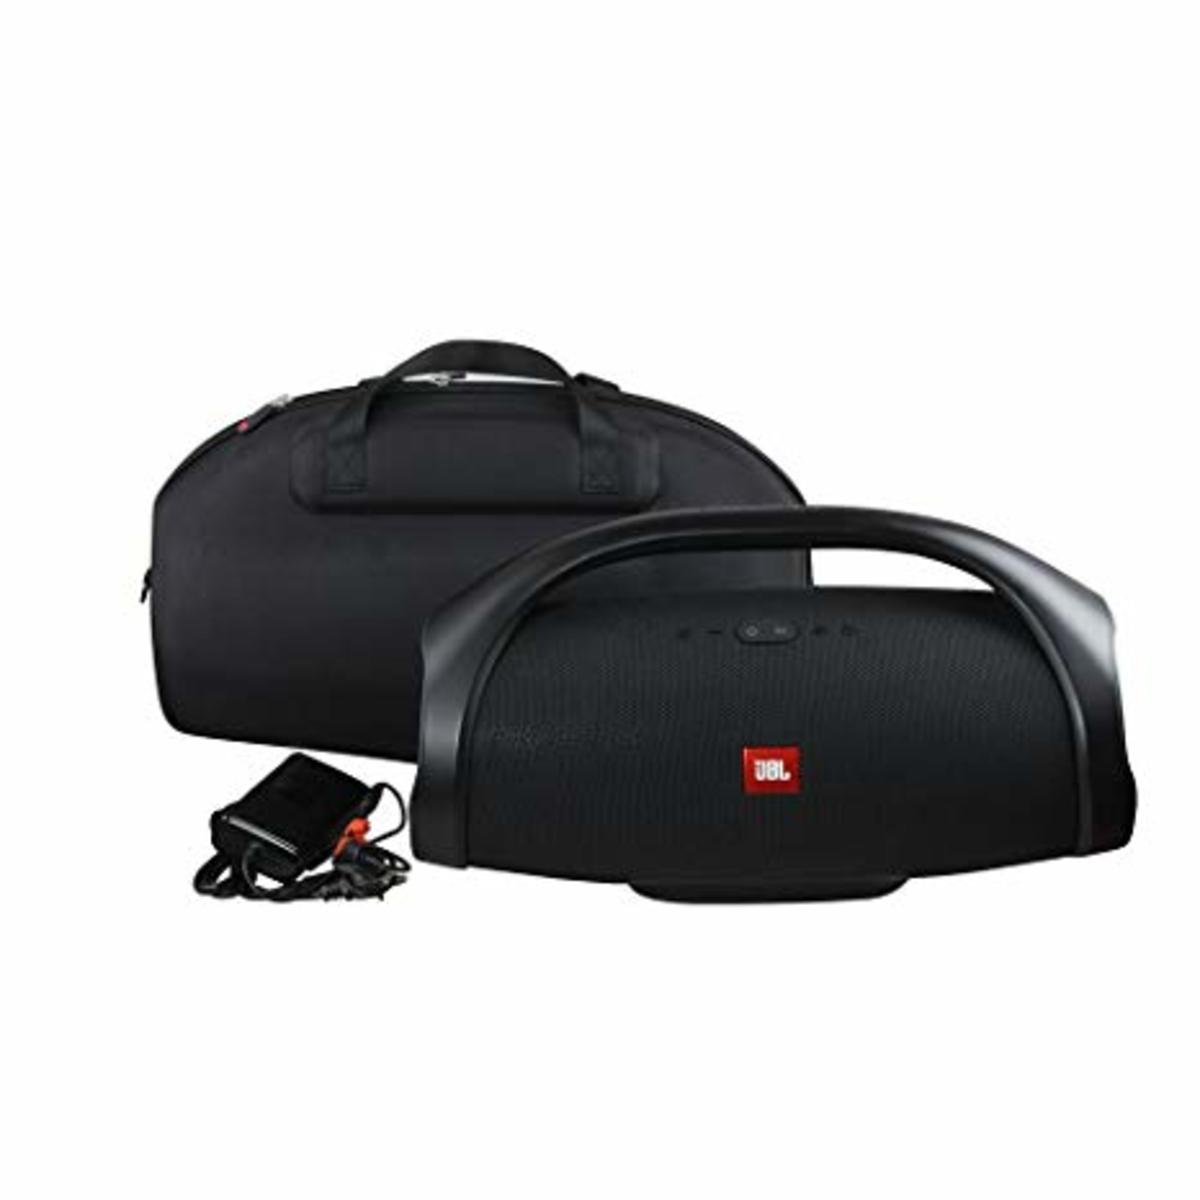 The JBL bluetooth boombox with the carrying case, sold separately.